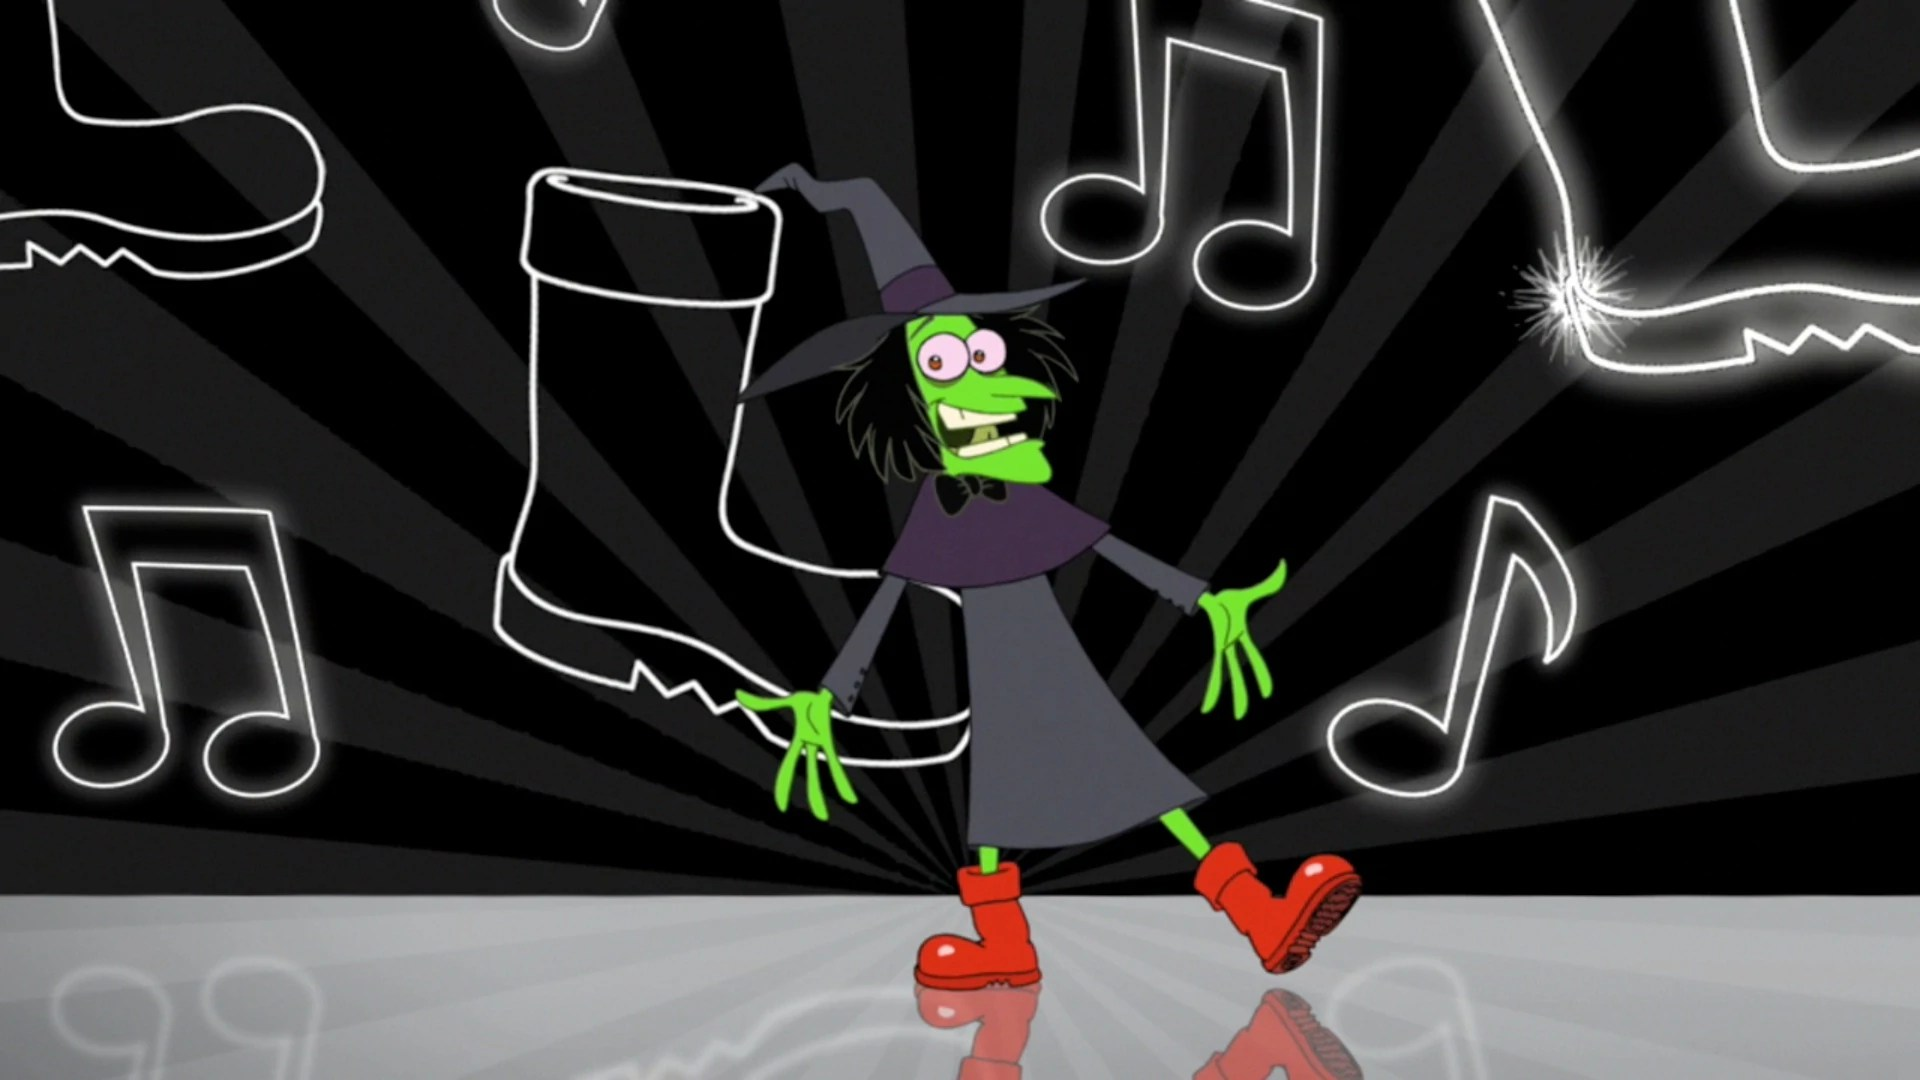 Picture of Dr. Doofenshmirtz as the Wicked Warlock, from Phineas and Ferb, episode